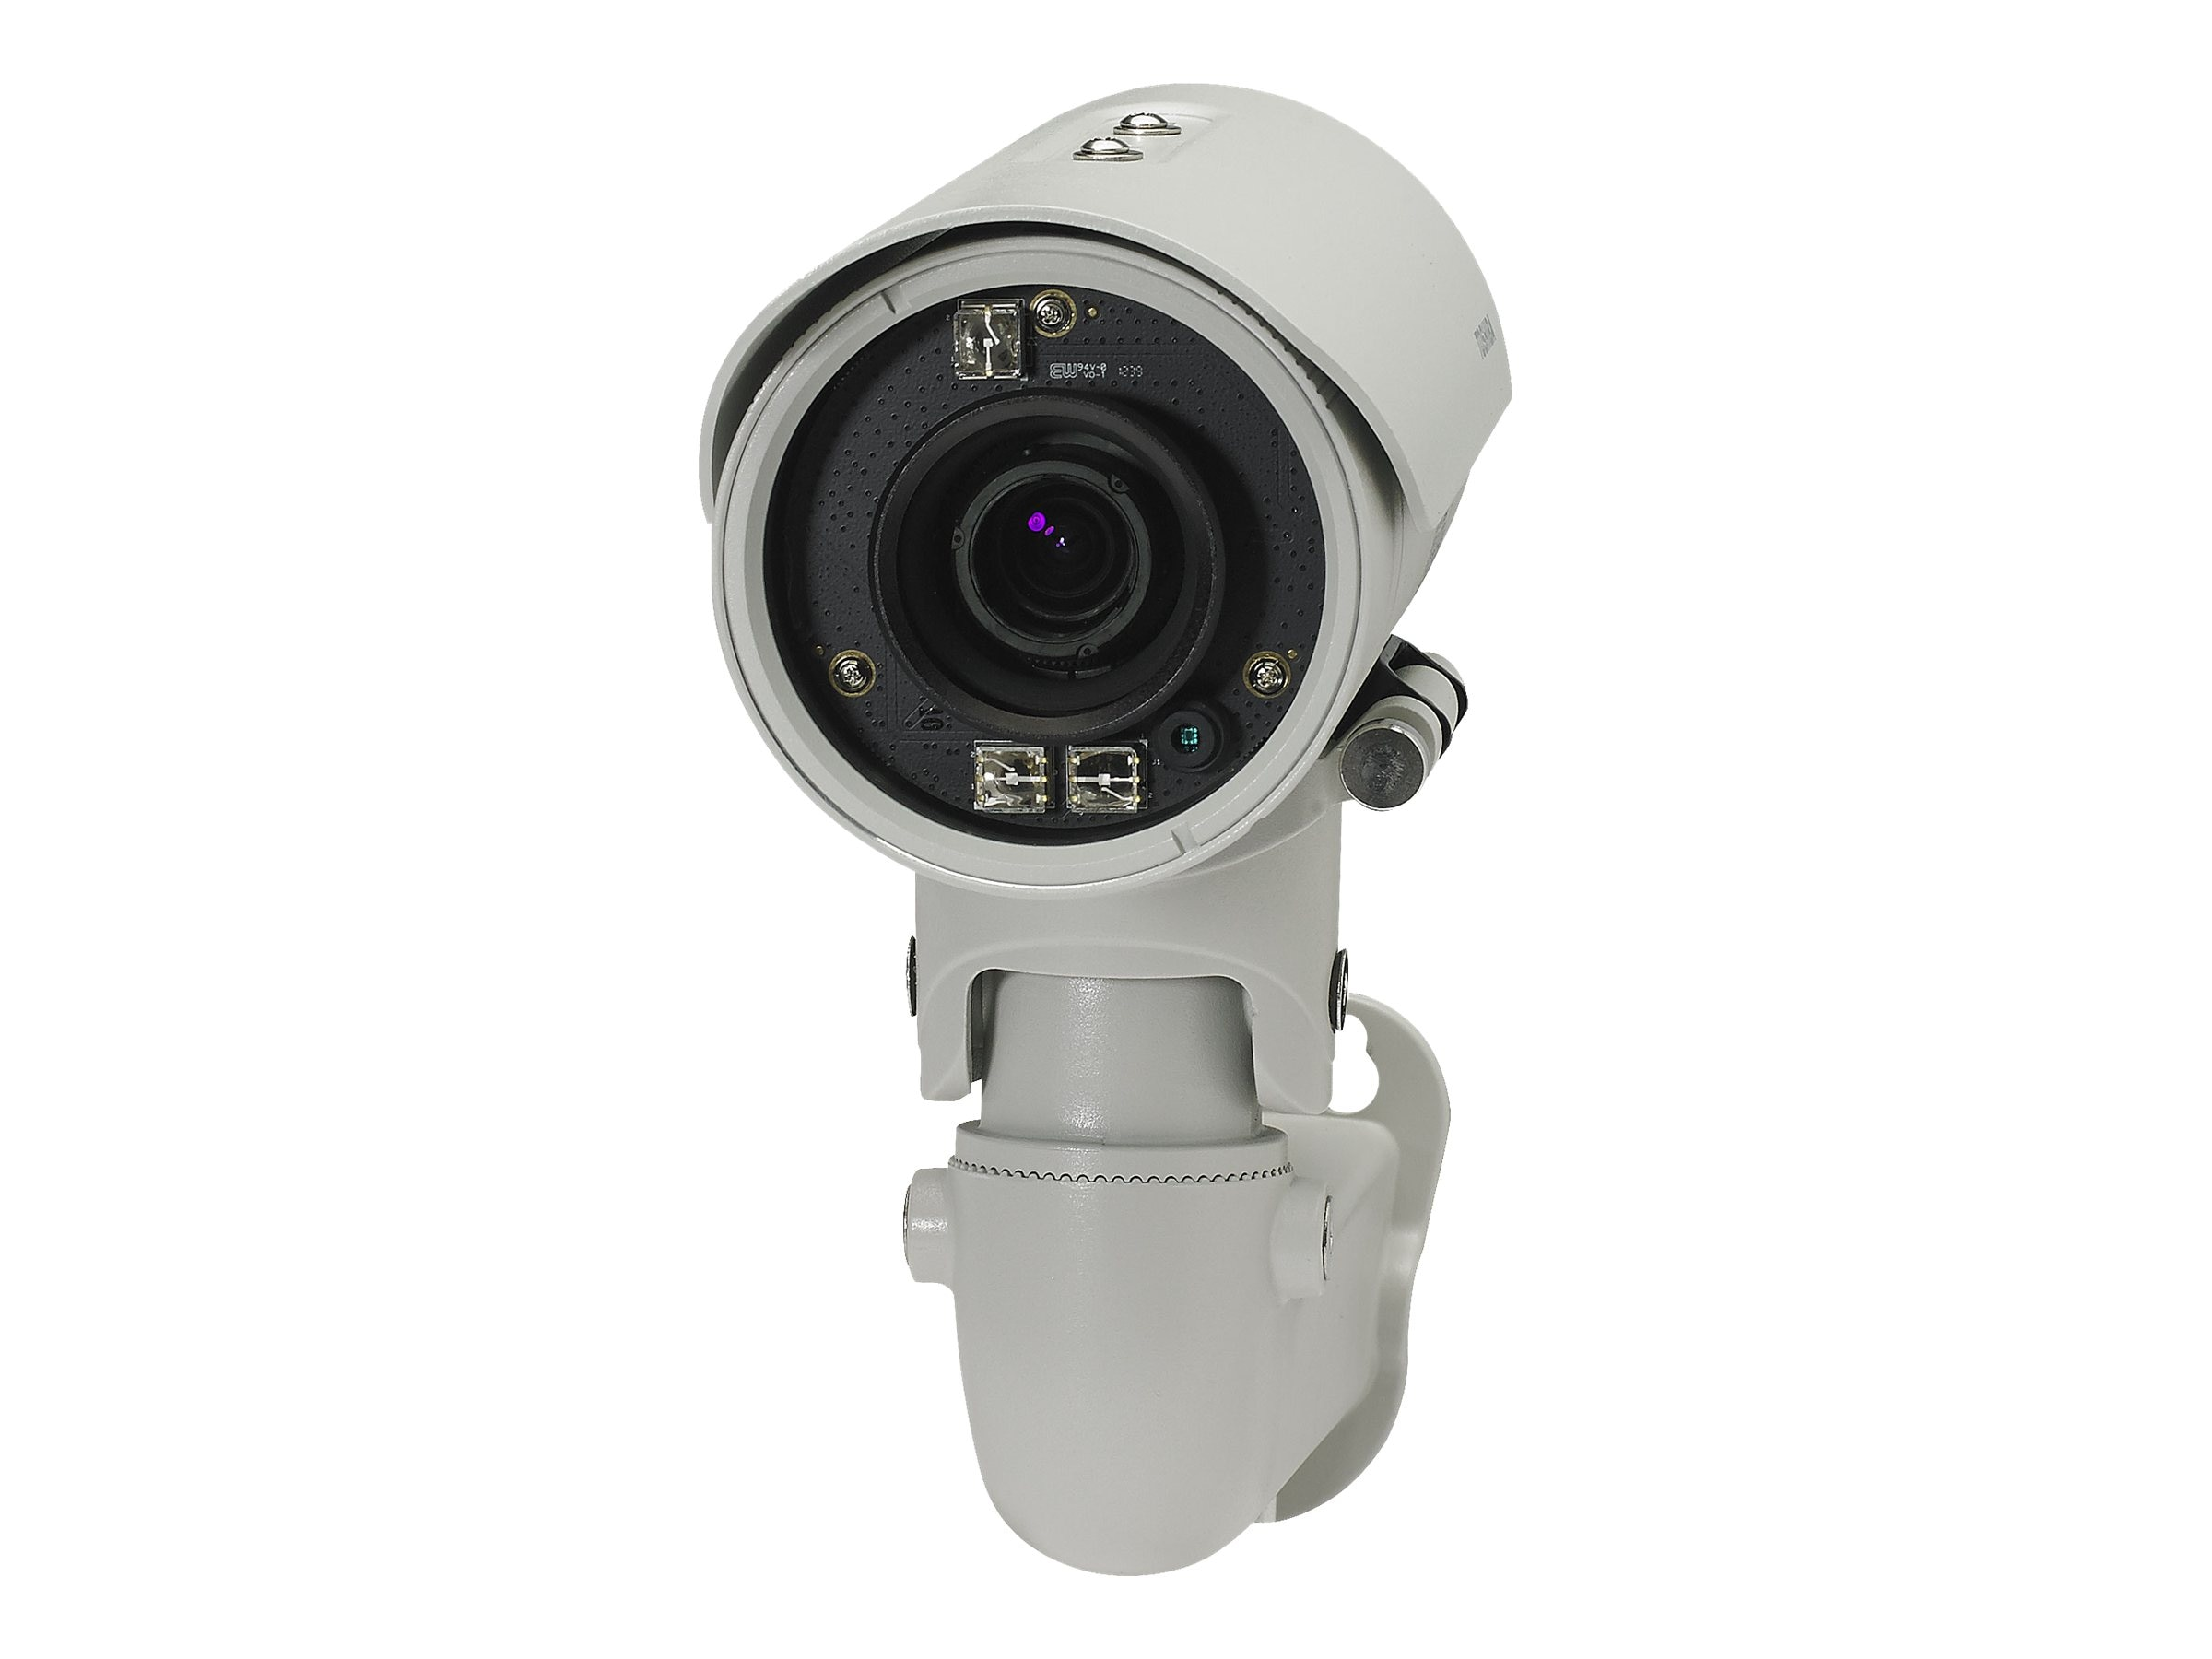 Toshiba IK-WB81A Full HD IP Bullet Camera, IK-WB81A, 16173660, Cameras - Security